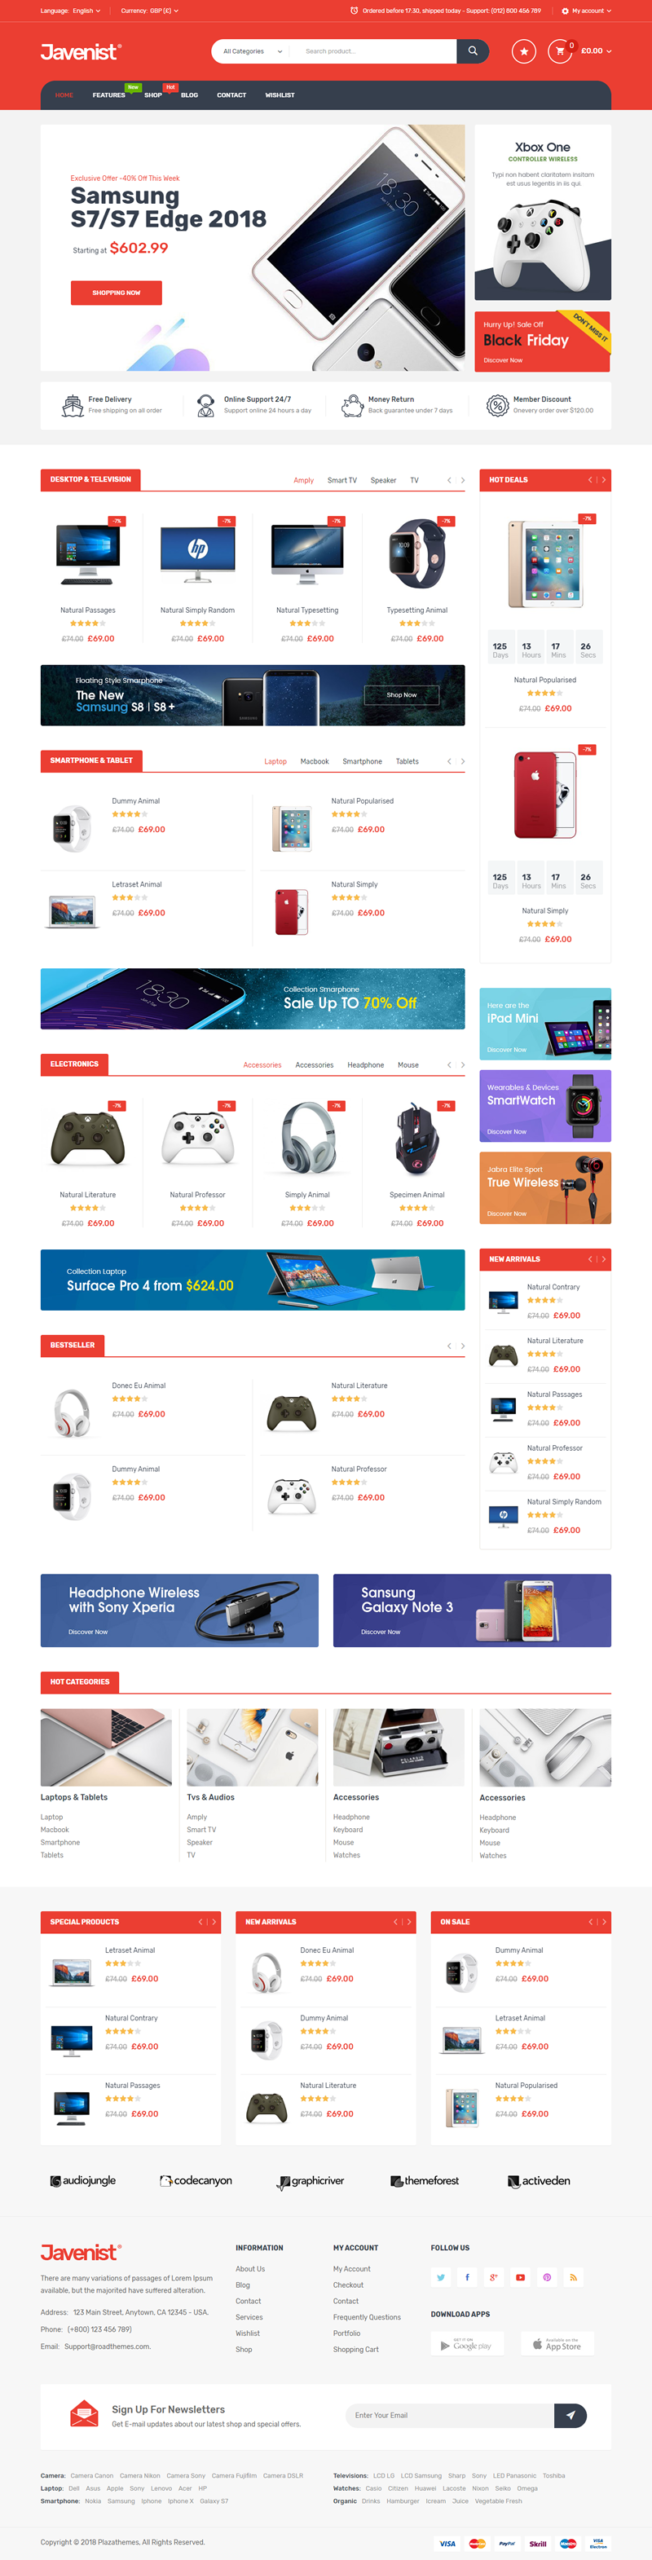 Javenist - Ecommerce Theme for WordPress